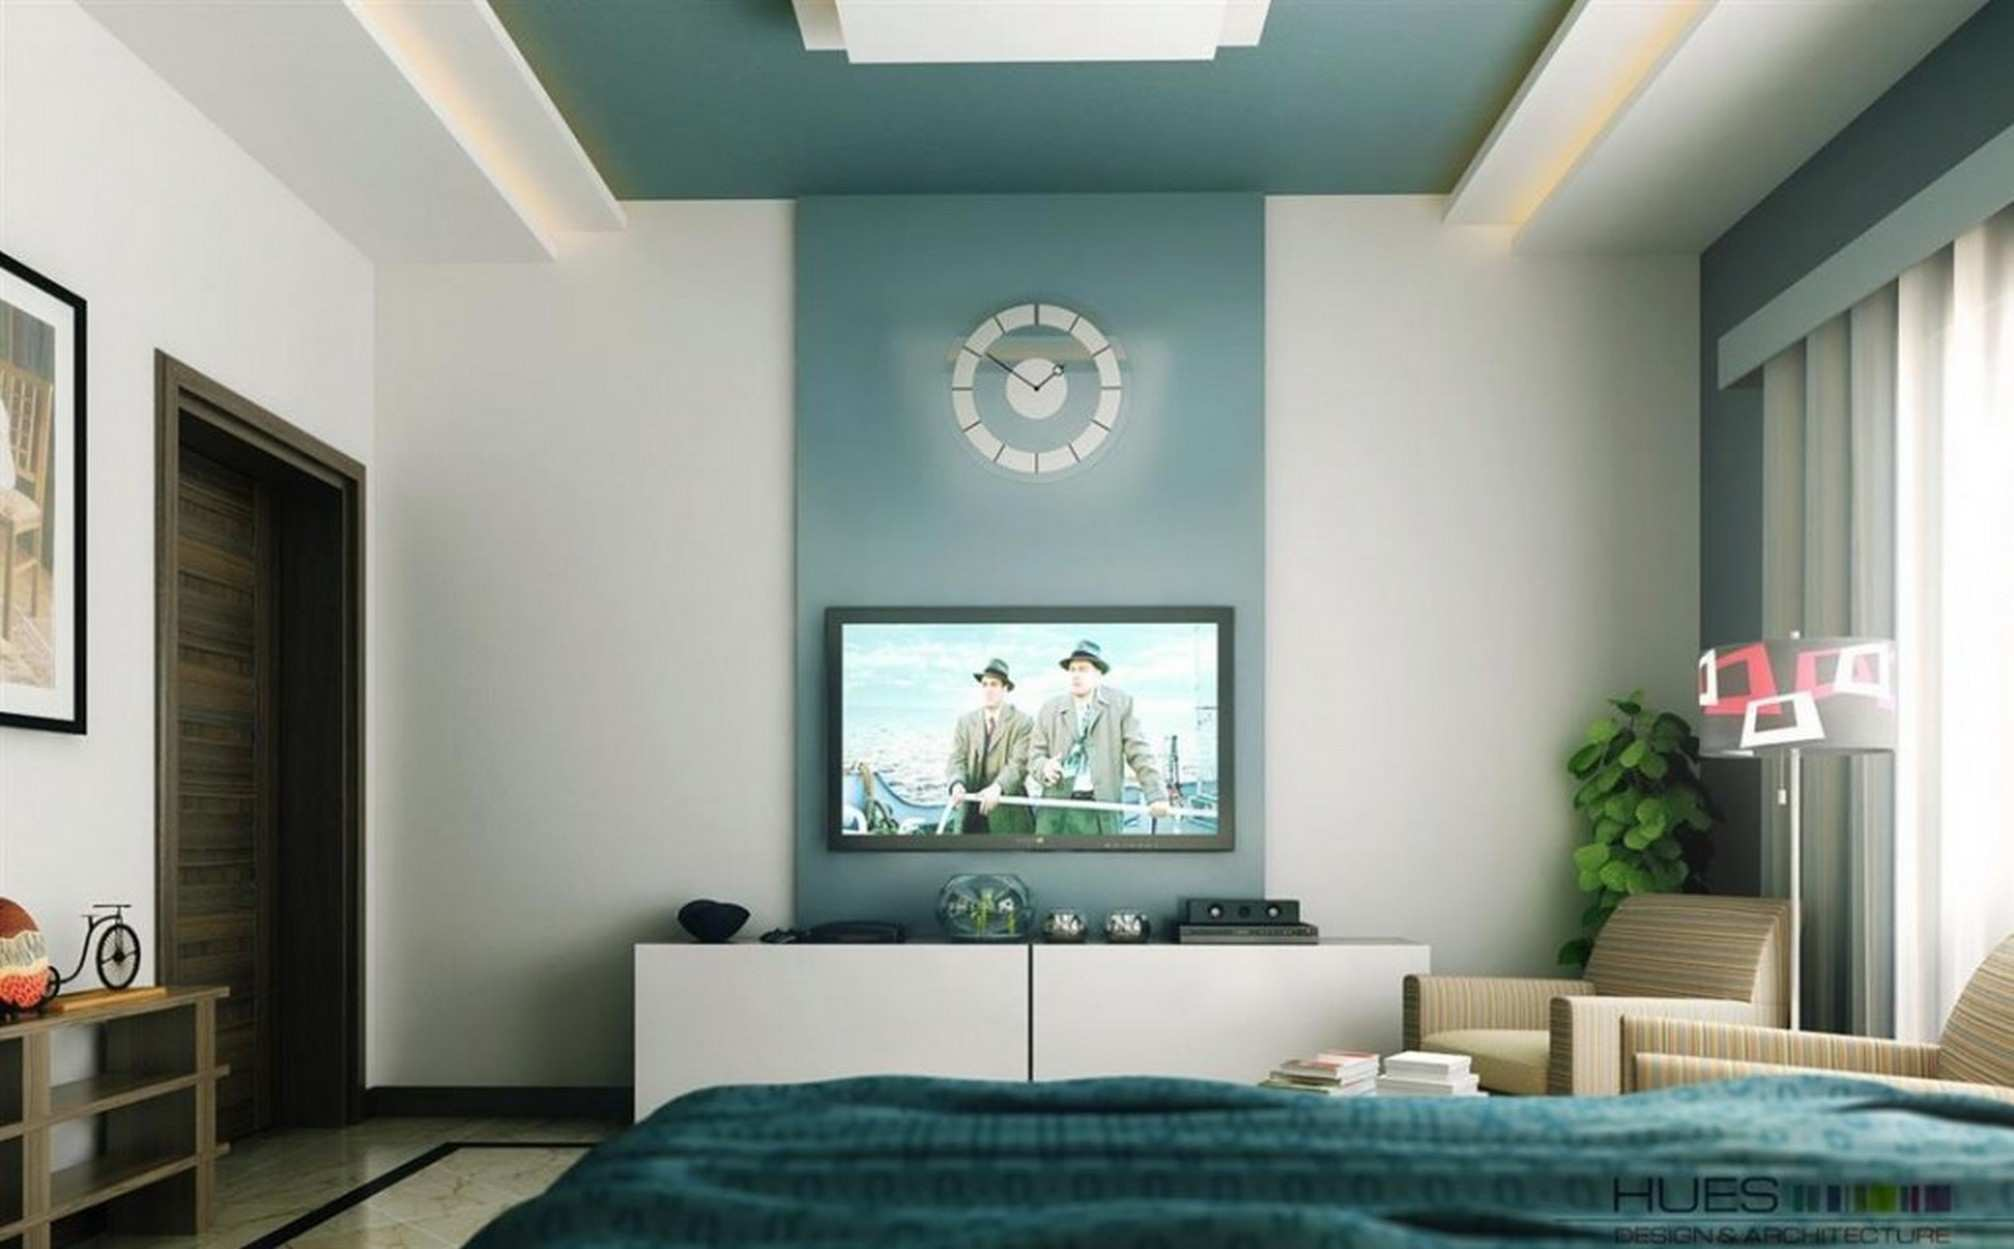 Accent Wall Color For High Walls With Round Wall Clock Ideas And TV